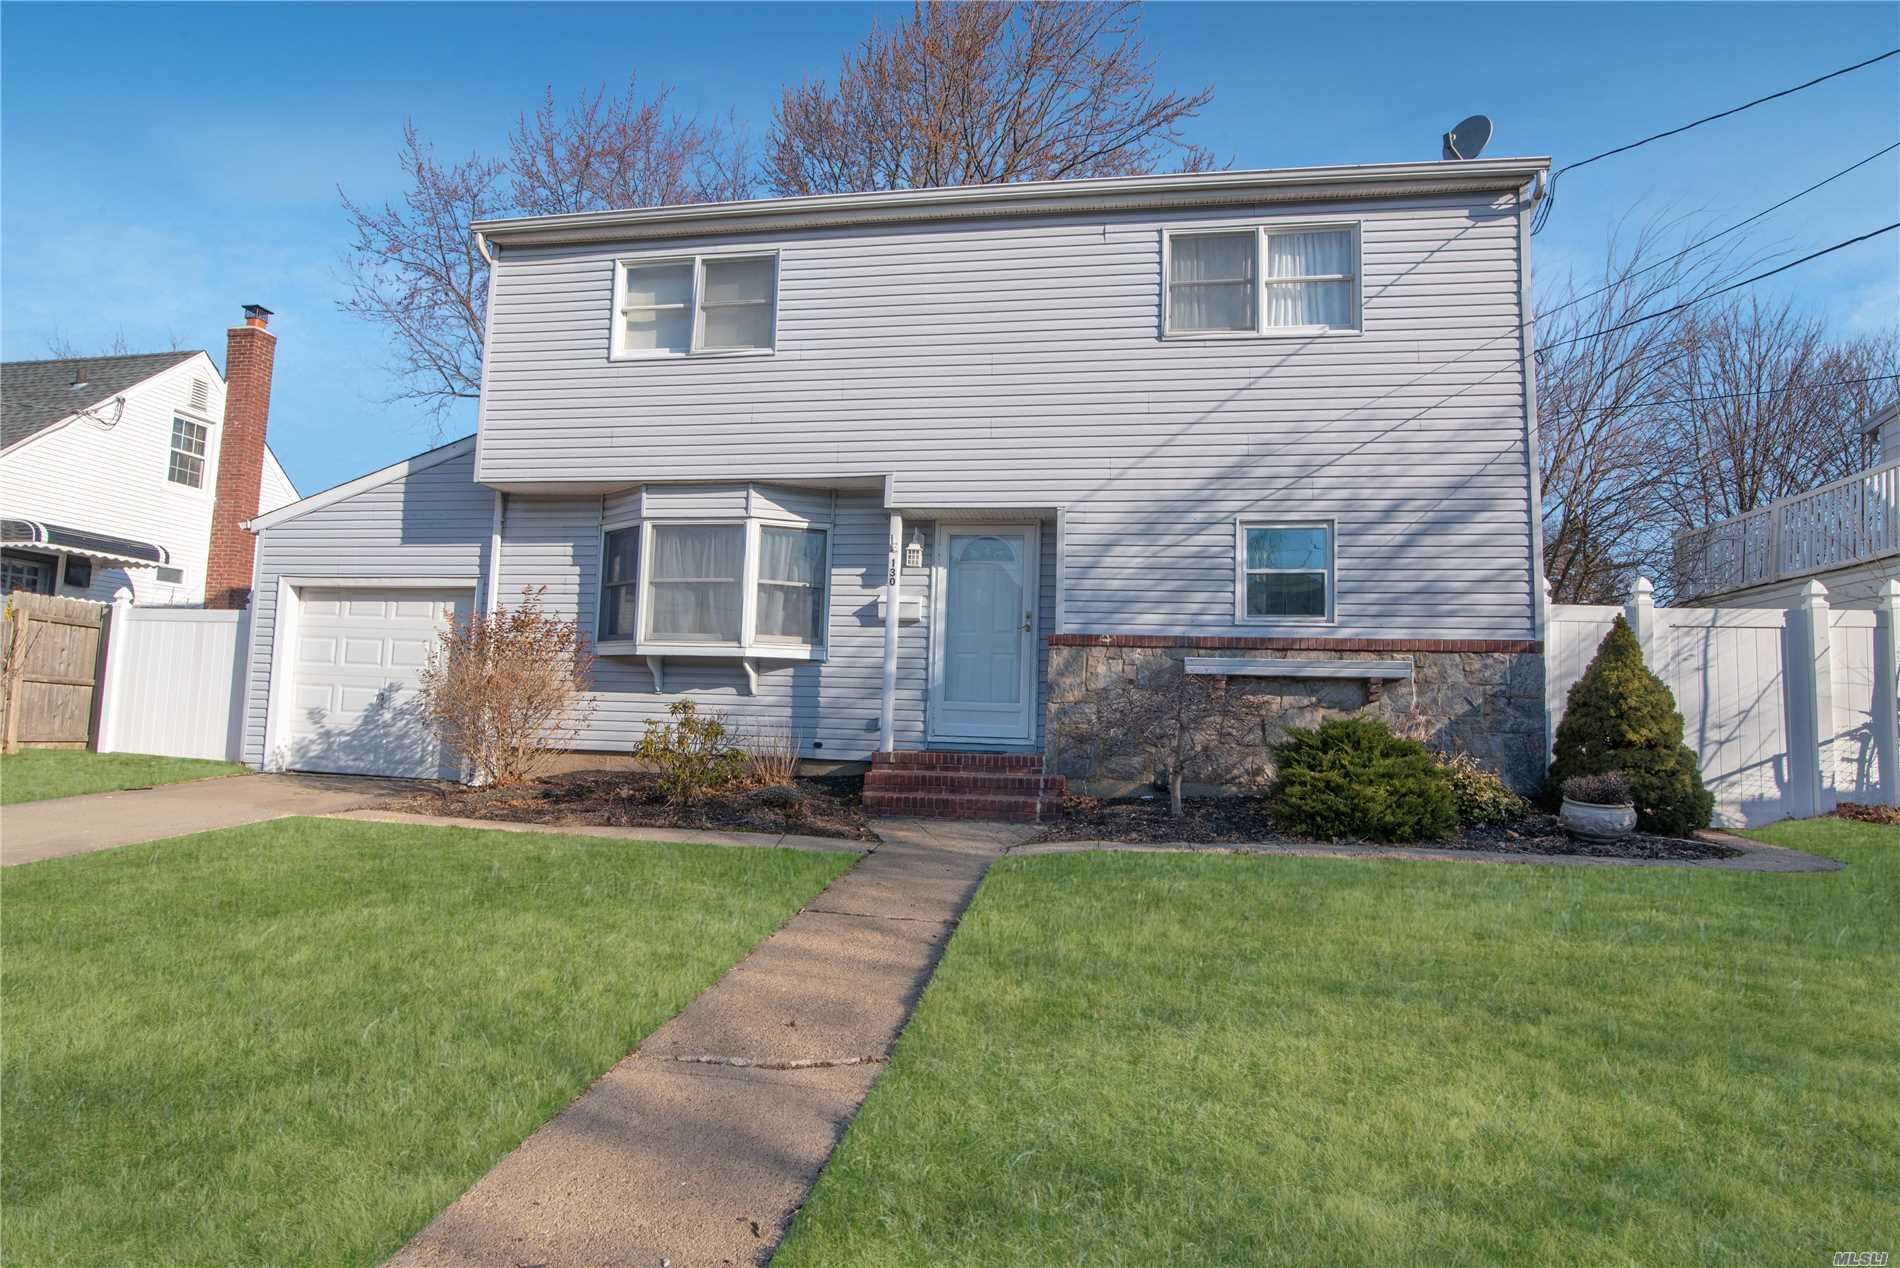 (photos to follow) Pretty & Desirable 5 Bedroom & 2 Bath Colonial in Island Trees SD# 26. Newer Kitchen, LR, FDR, Beautiful HW Floors, 5th Bedroom on 1st FL Optional Office/Den/Playroom. Huge Basement with Great Possibilities, Lots of Storage, Fantastic Property/Exterior, Central Air Conditioning, American Home Shield 'One Year Warranty' INCLUDED!